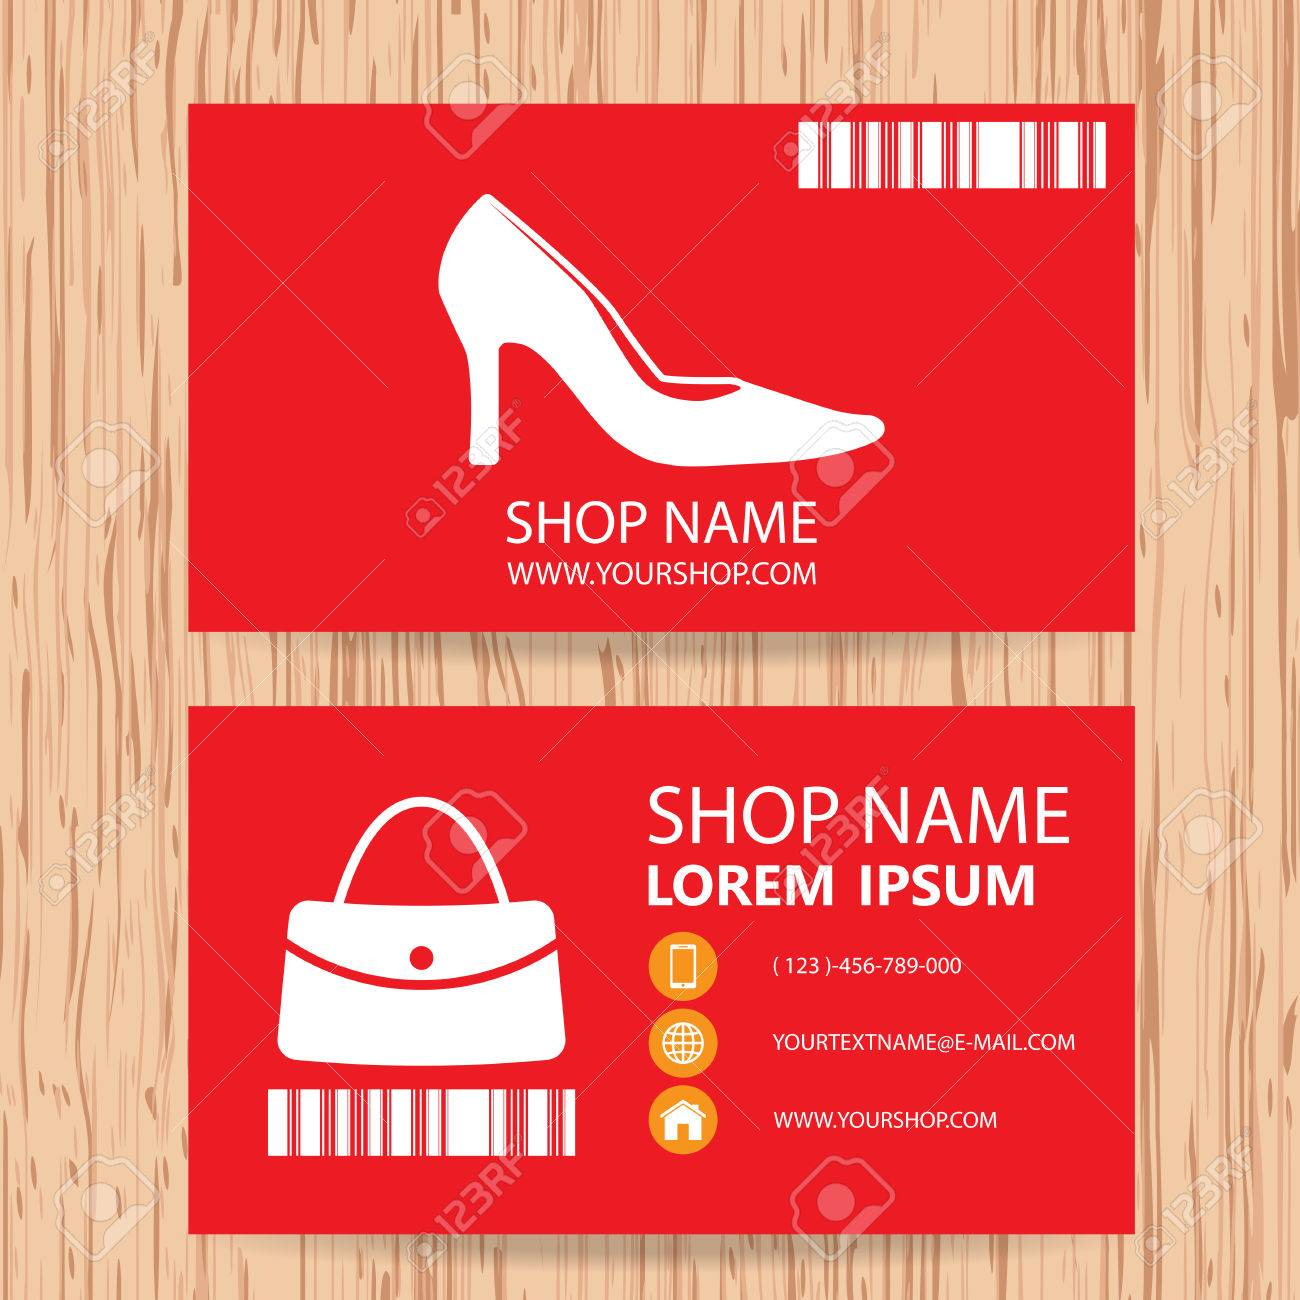 Business Card Vector Background Woman Fashion Store Royalty Free